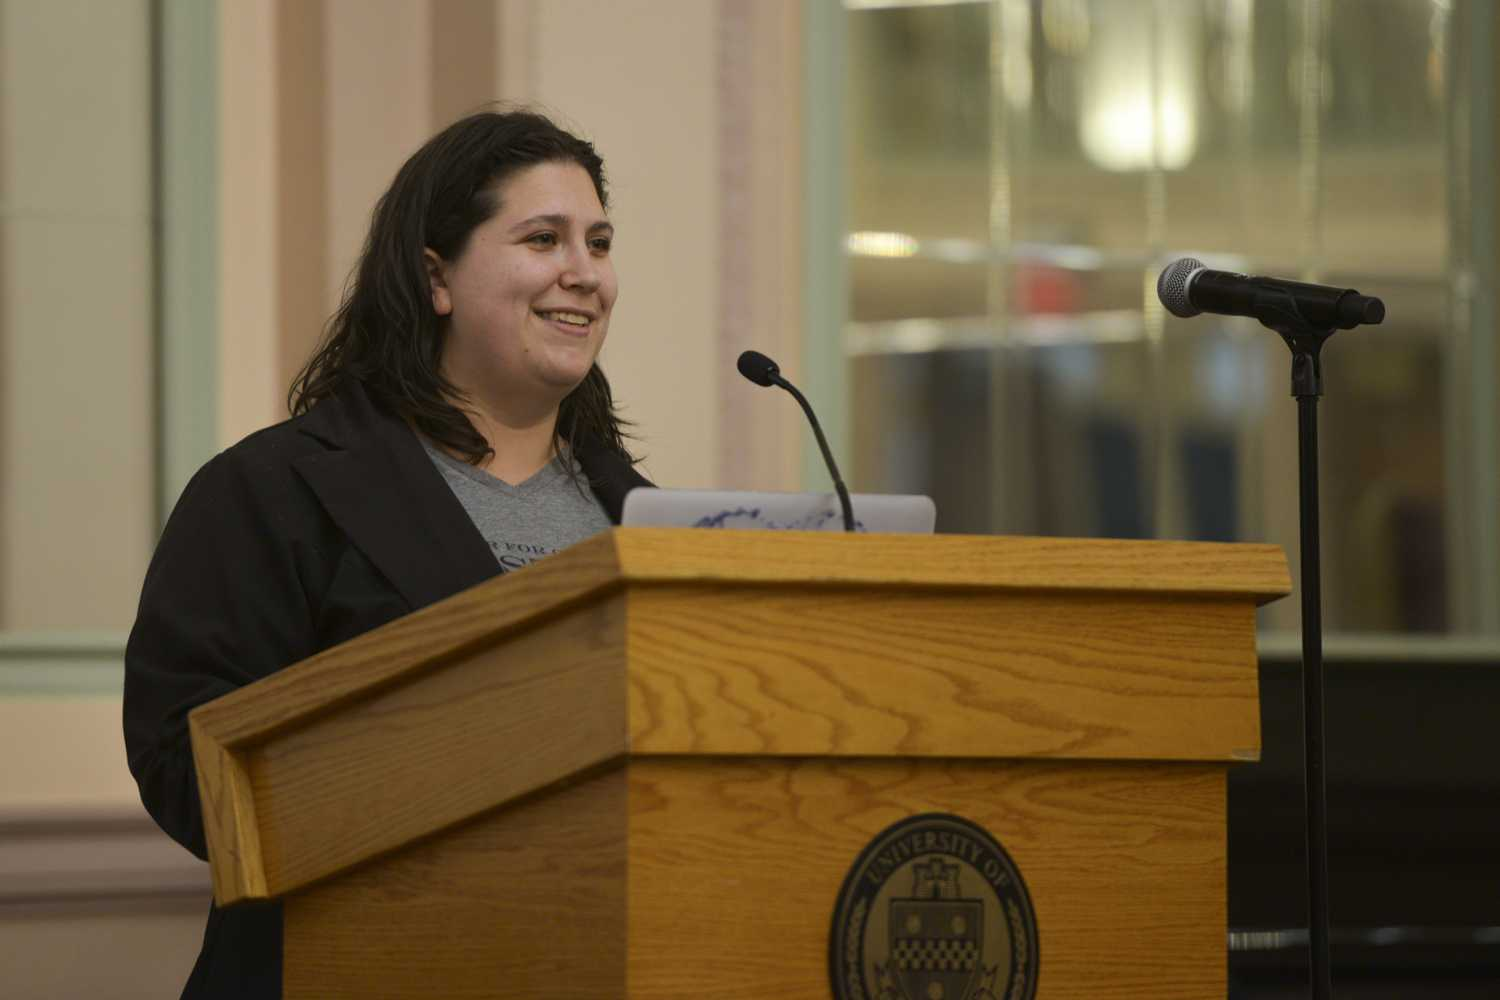 Veronica Coptis, executive director of the Center for Coalfield Justice, discusses environmental and labor issues at the Environmental Justice and Labor Rights event in the William Pitt Union Wednesday night. (Photo by Sarah Cutshall | Staff Photographer)